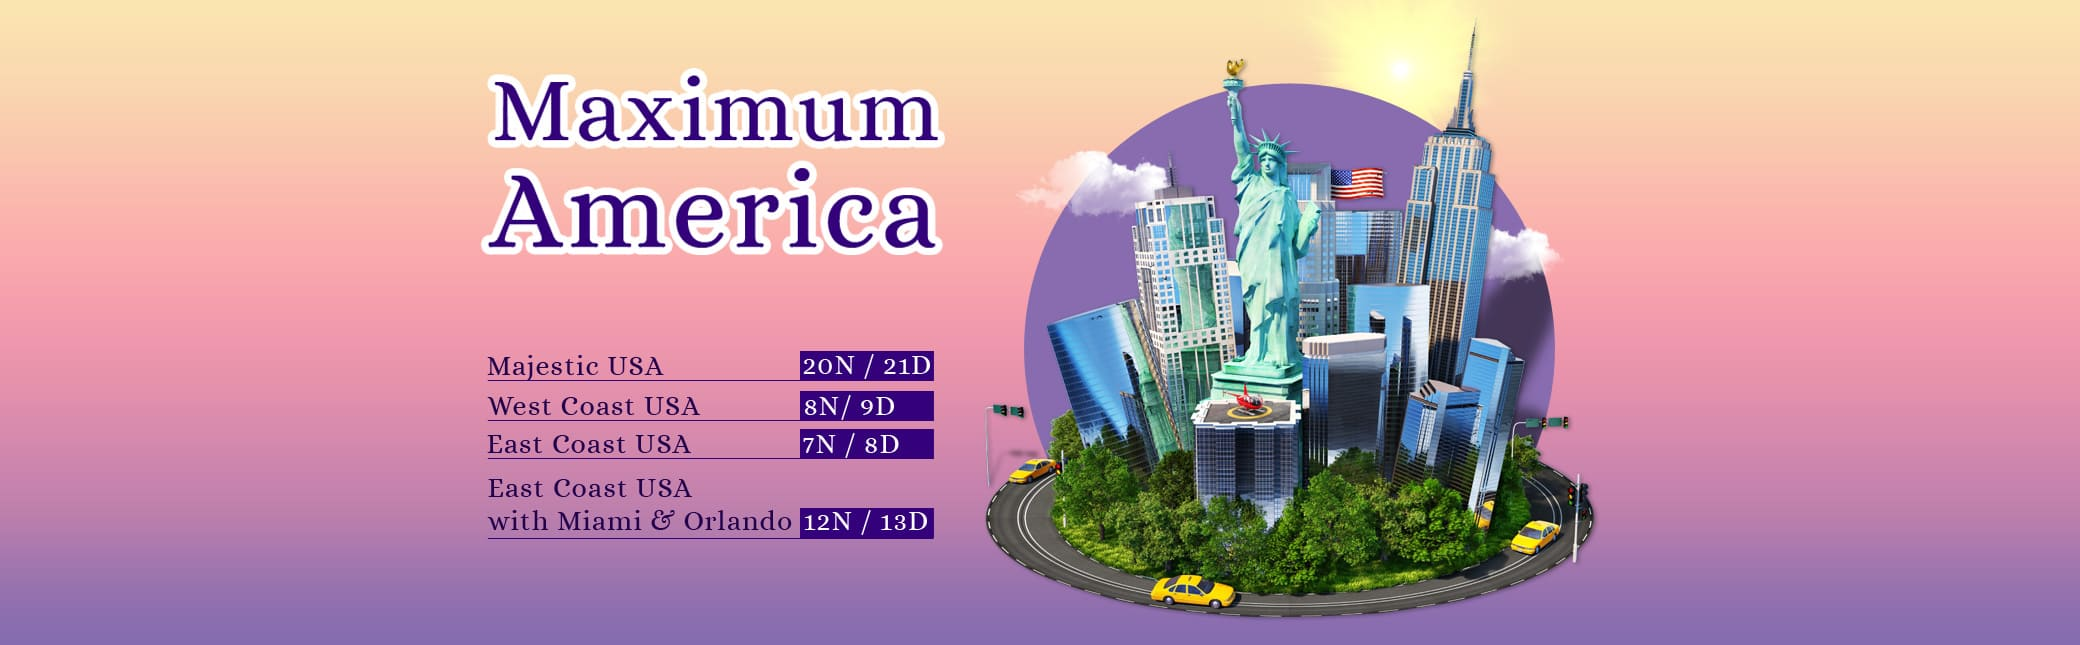 Maximum America Tour Packages